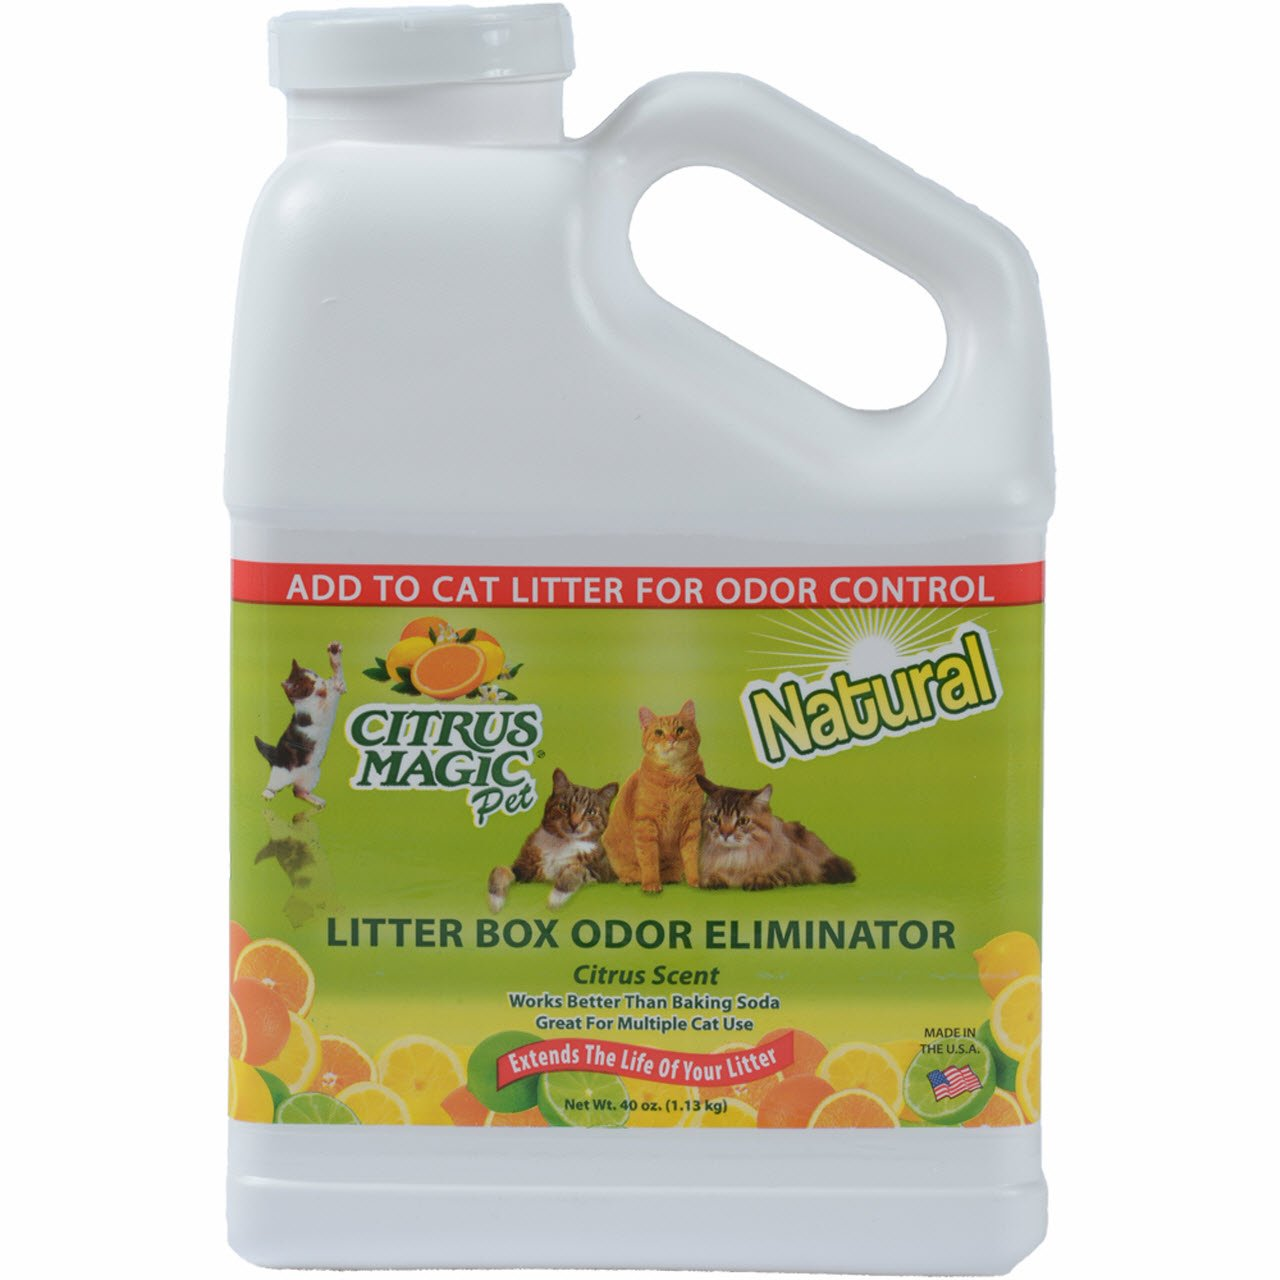 Citrus Magic Pet Litter Box Odor Eliminator Fresh Citrus, 40-Ounce